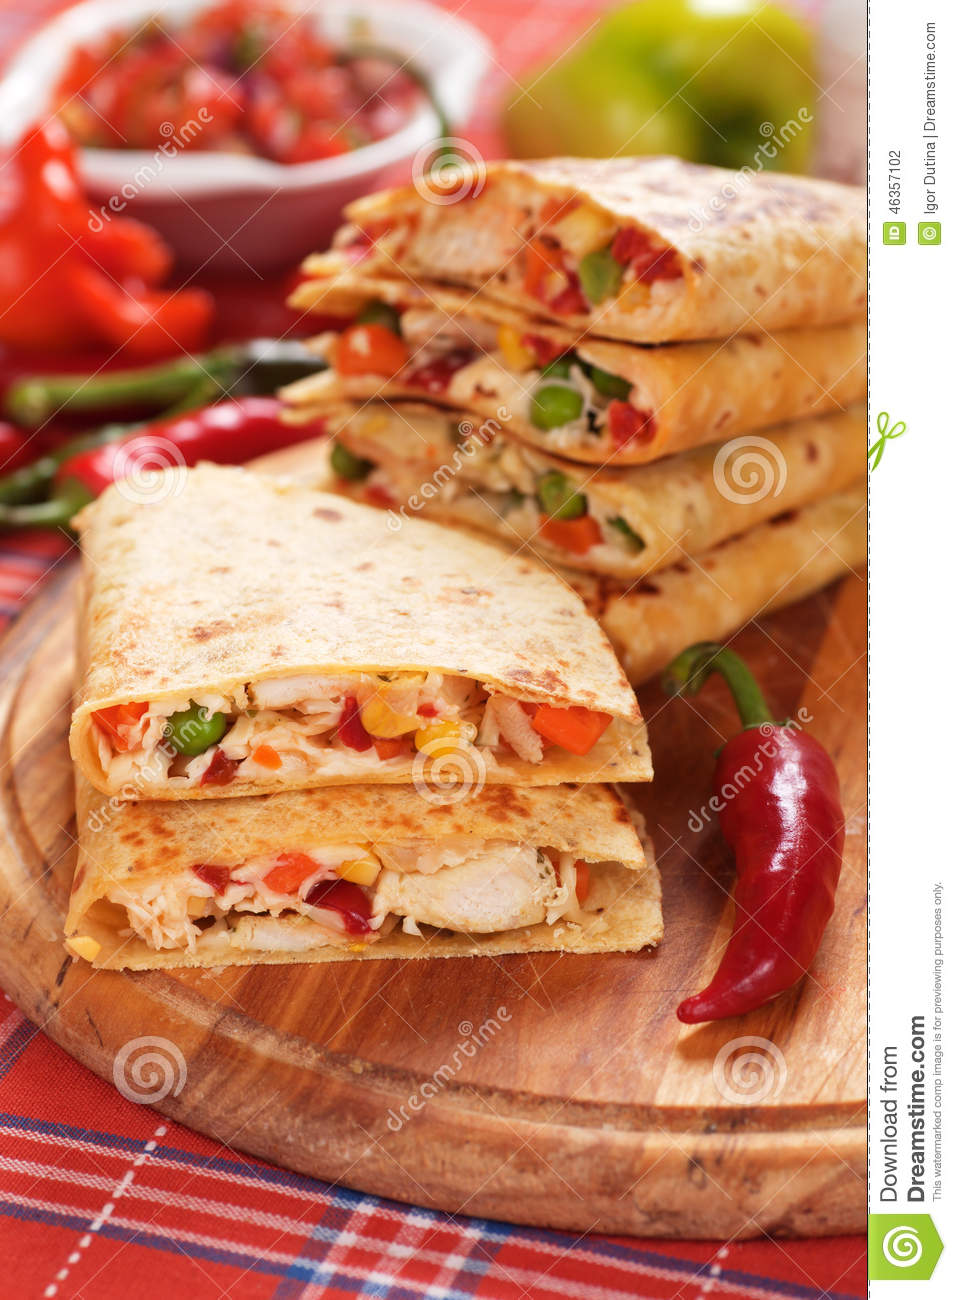 Quesadillas with chicken meat and vegetables